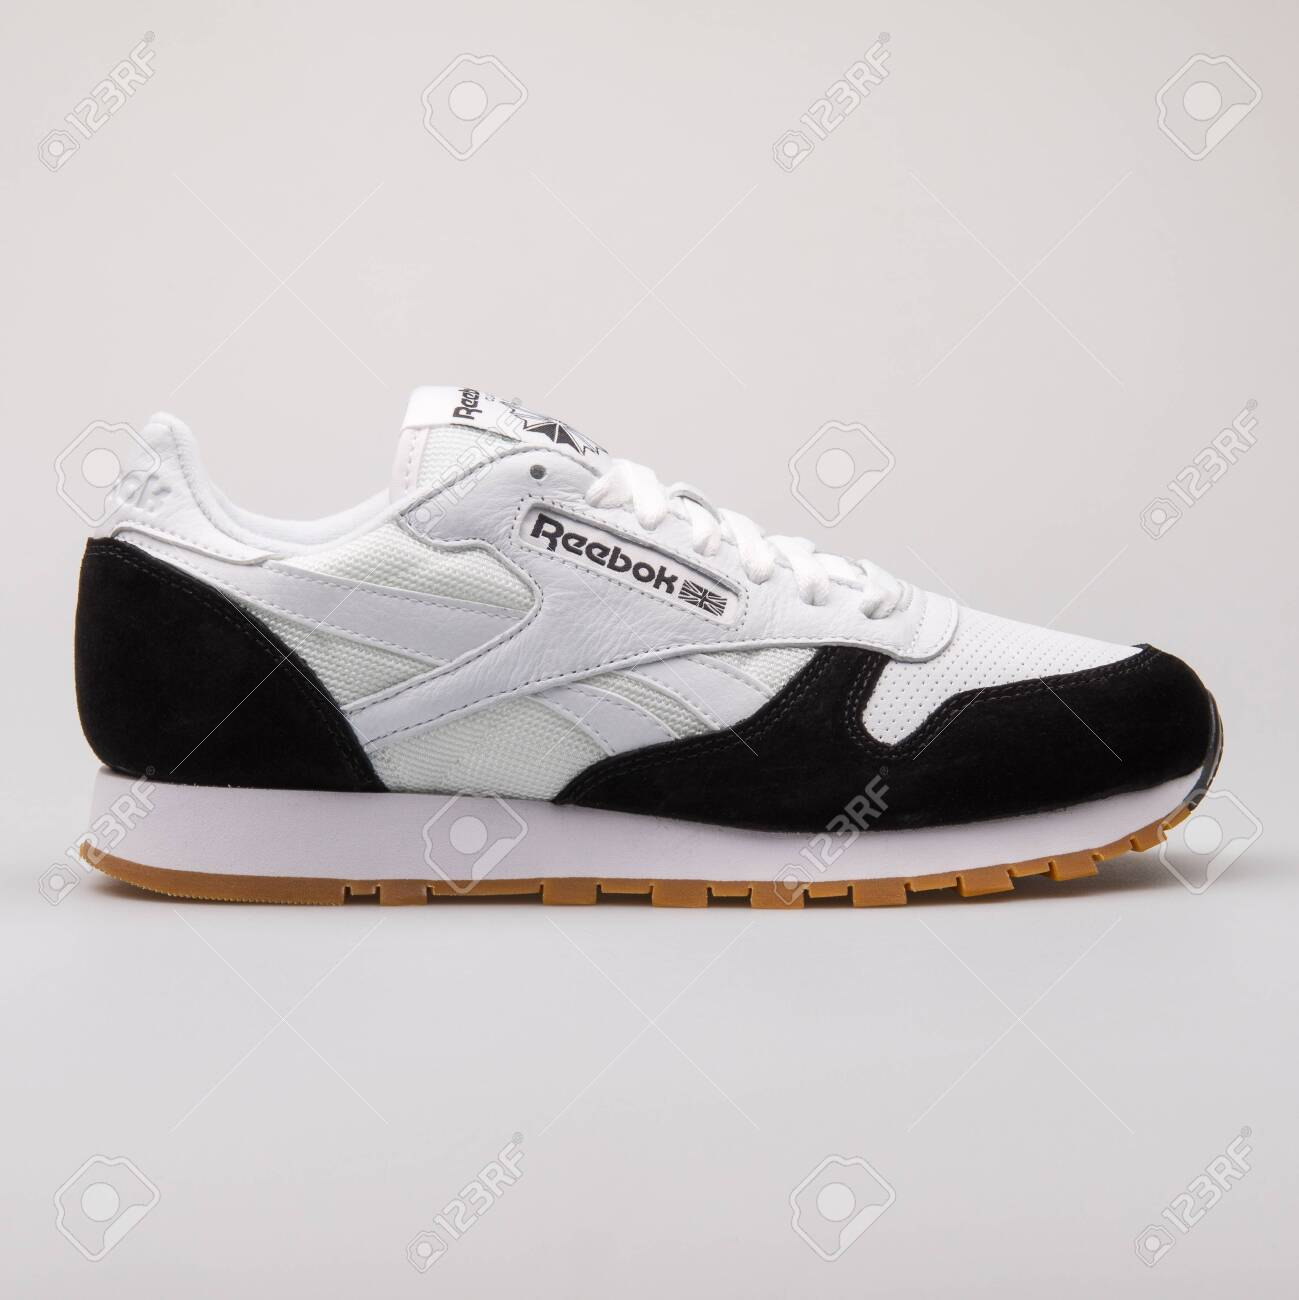 VIENNA, AUSTRIA AUGUST 28, 2017: Reebok Classic Leather SPP..